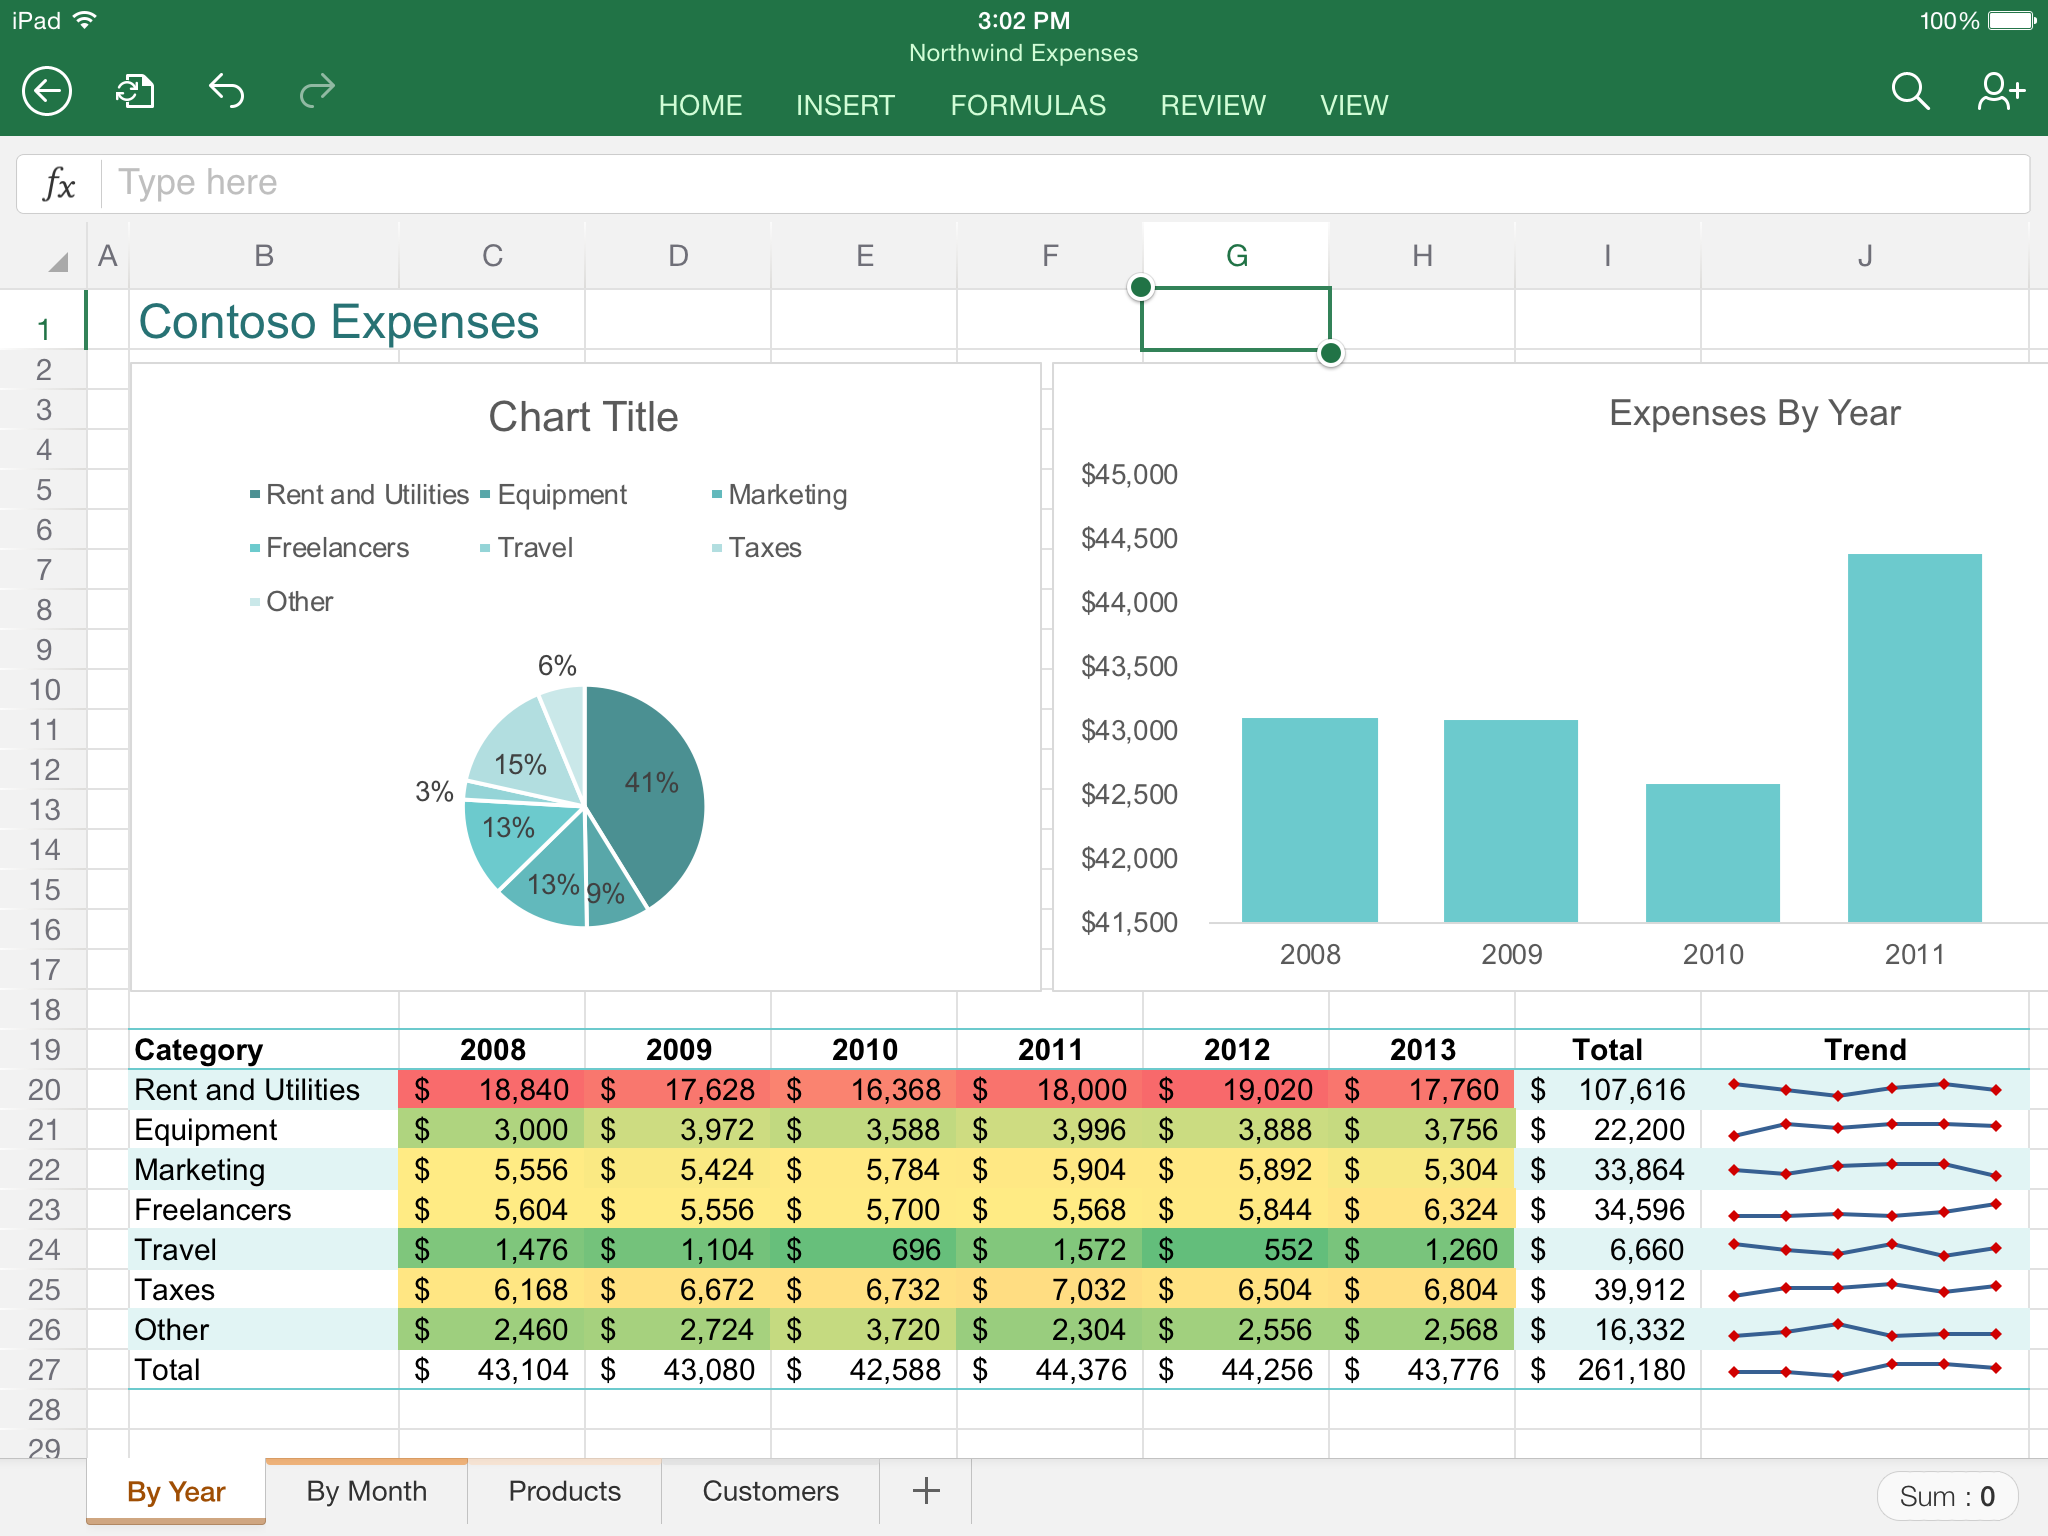 Ediblewildsus  Unique App Highlight Excel  Mobile Digital Now With Extraordinary Excel In Action With Archaic Excel Percentage Format Also Excel Function Or In Addition How Do You Create A Table In Excel And Excel Function Multiply As Well As Dupont Analysis Excel Additionally Excel X Axis From Youstonybrookedu With Ediblewildsus  Extraordinary App Highlight Excel  Mobile Digital Now With Archaic Excel In Action And Unique Excel Percentage Format Also Excel Function Or In Addition How Do You Create A Table In Excel From Youstonybrookedu